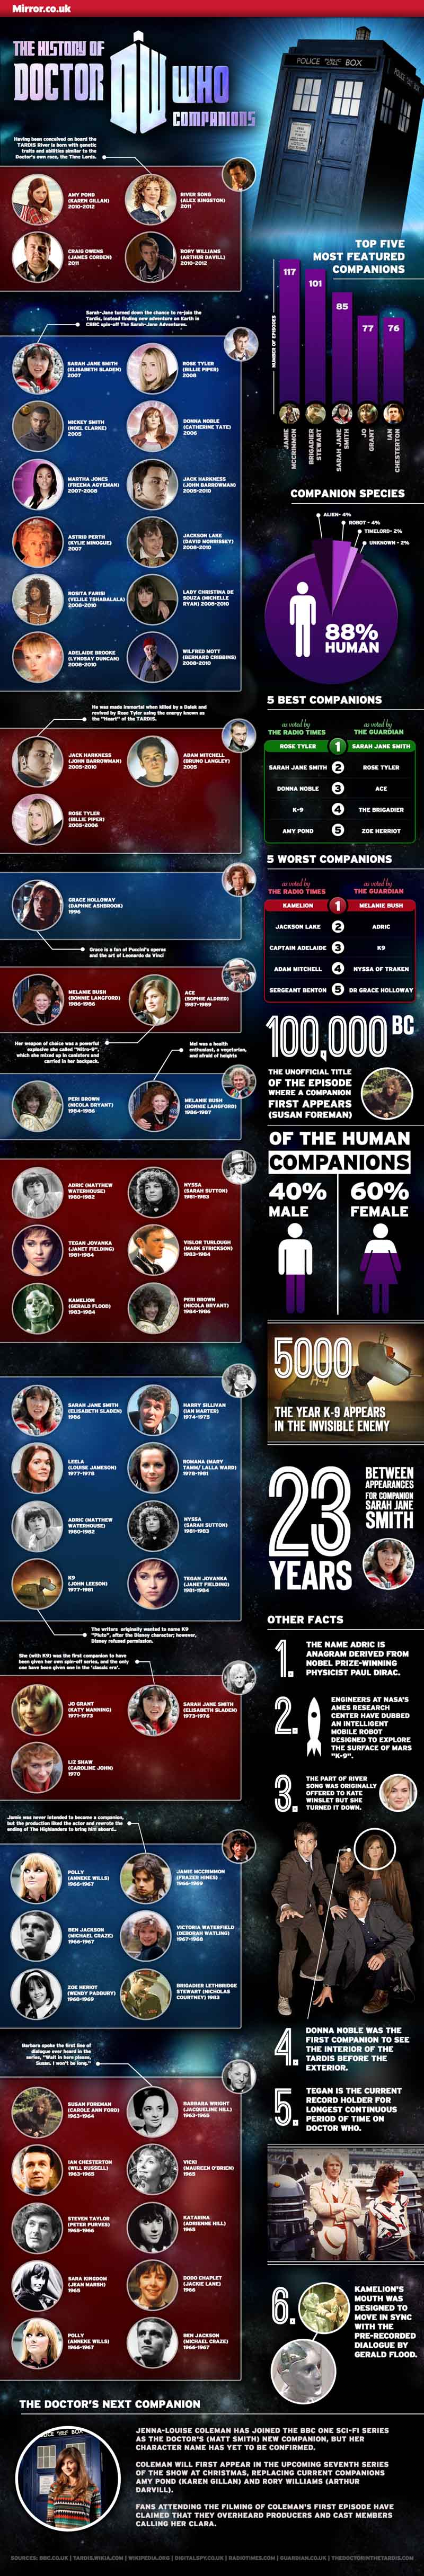 The History of Doctor Who